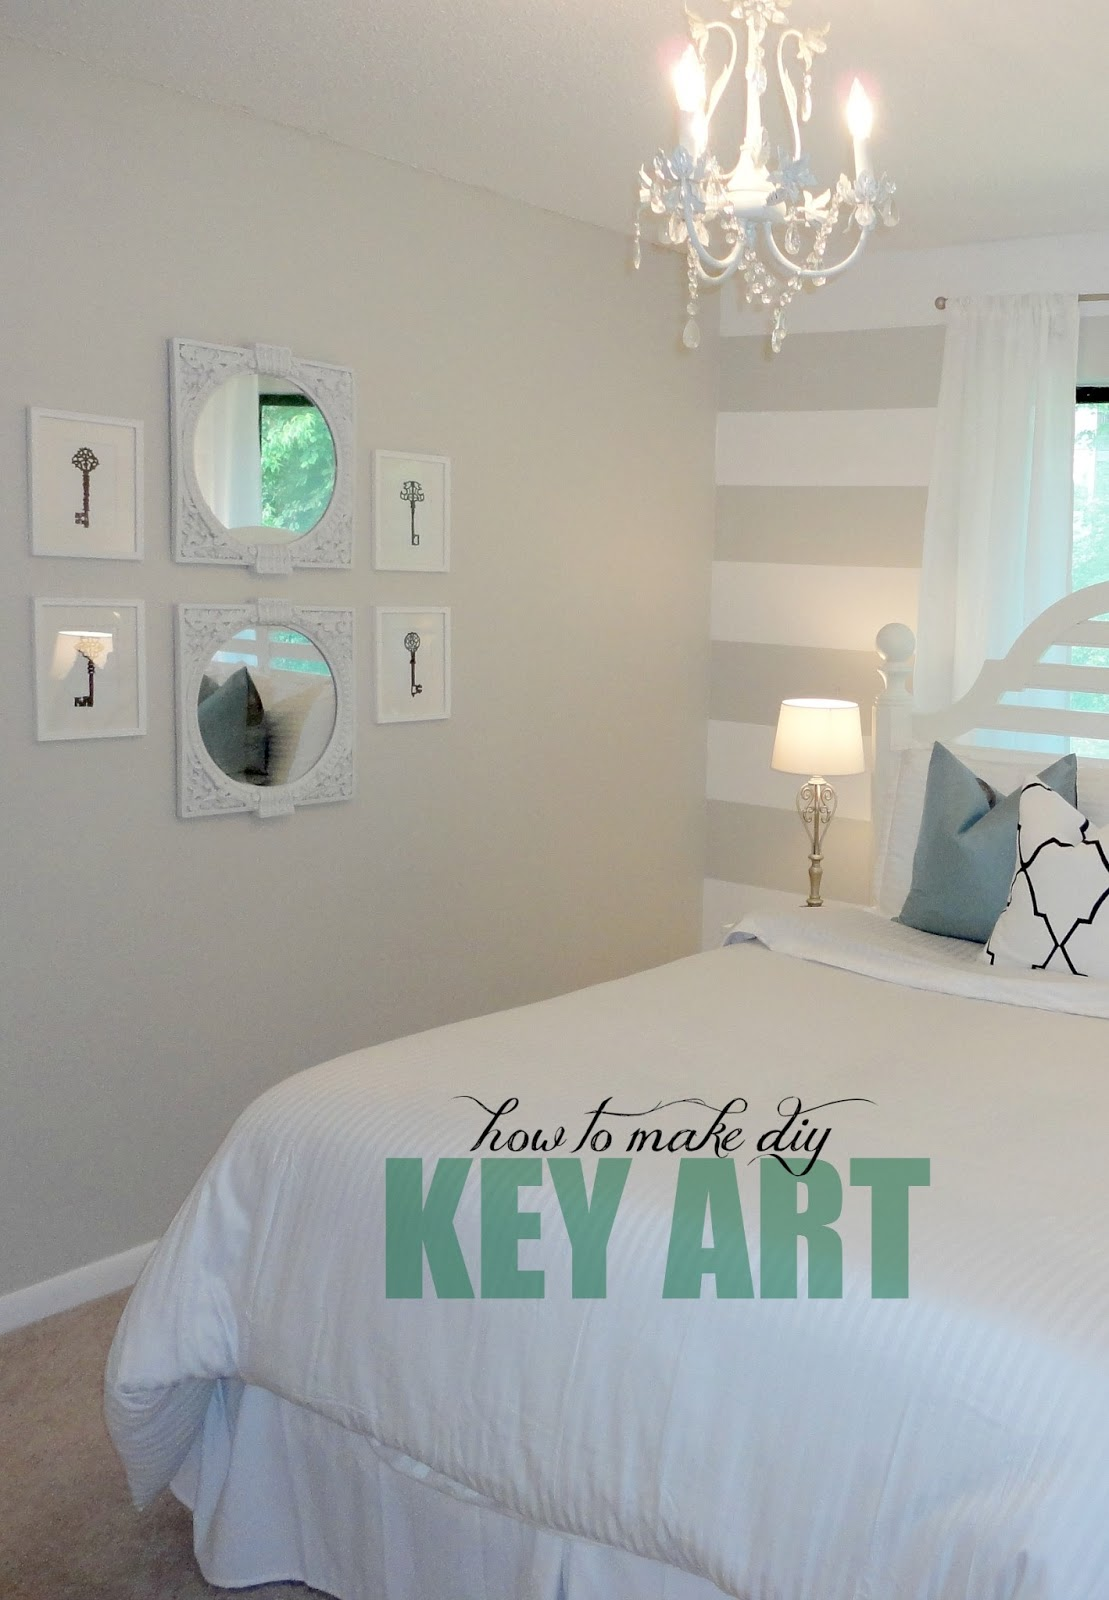 Livelovediy 10 diy art ideas easy ways to decorate your walls - Diy wall decor for bedroom ...